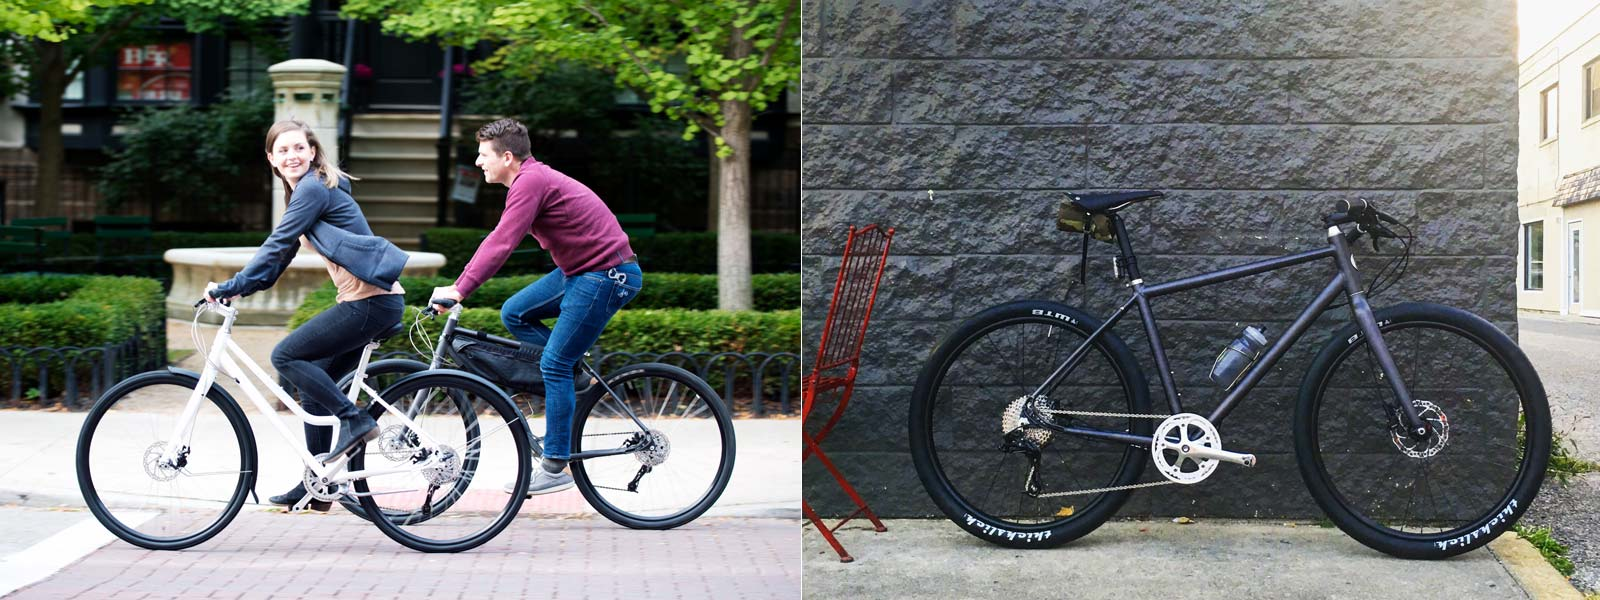 roll: Bicycles Offers Customized Bicycles at Affordable Prices Through Everyday Cycles!